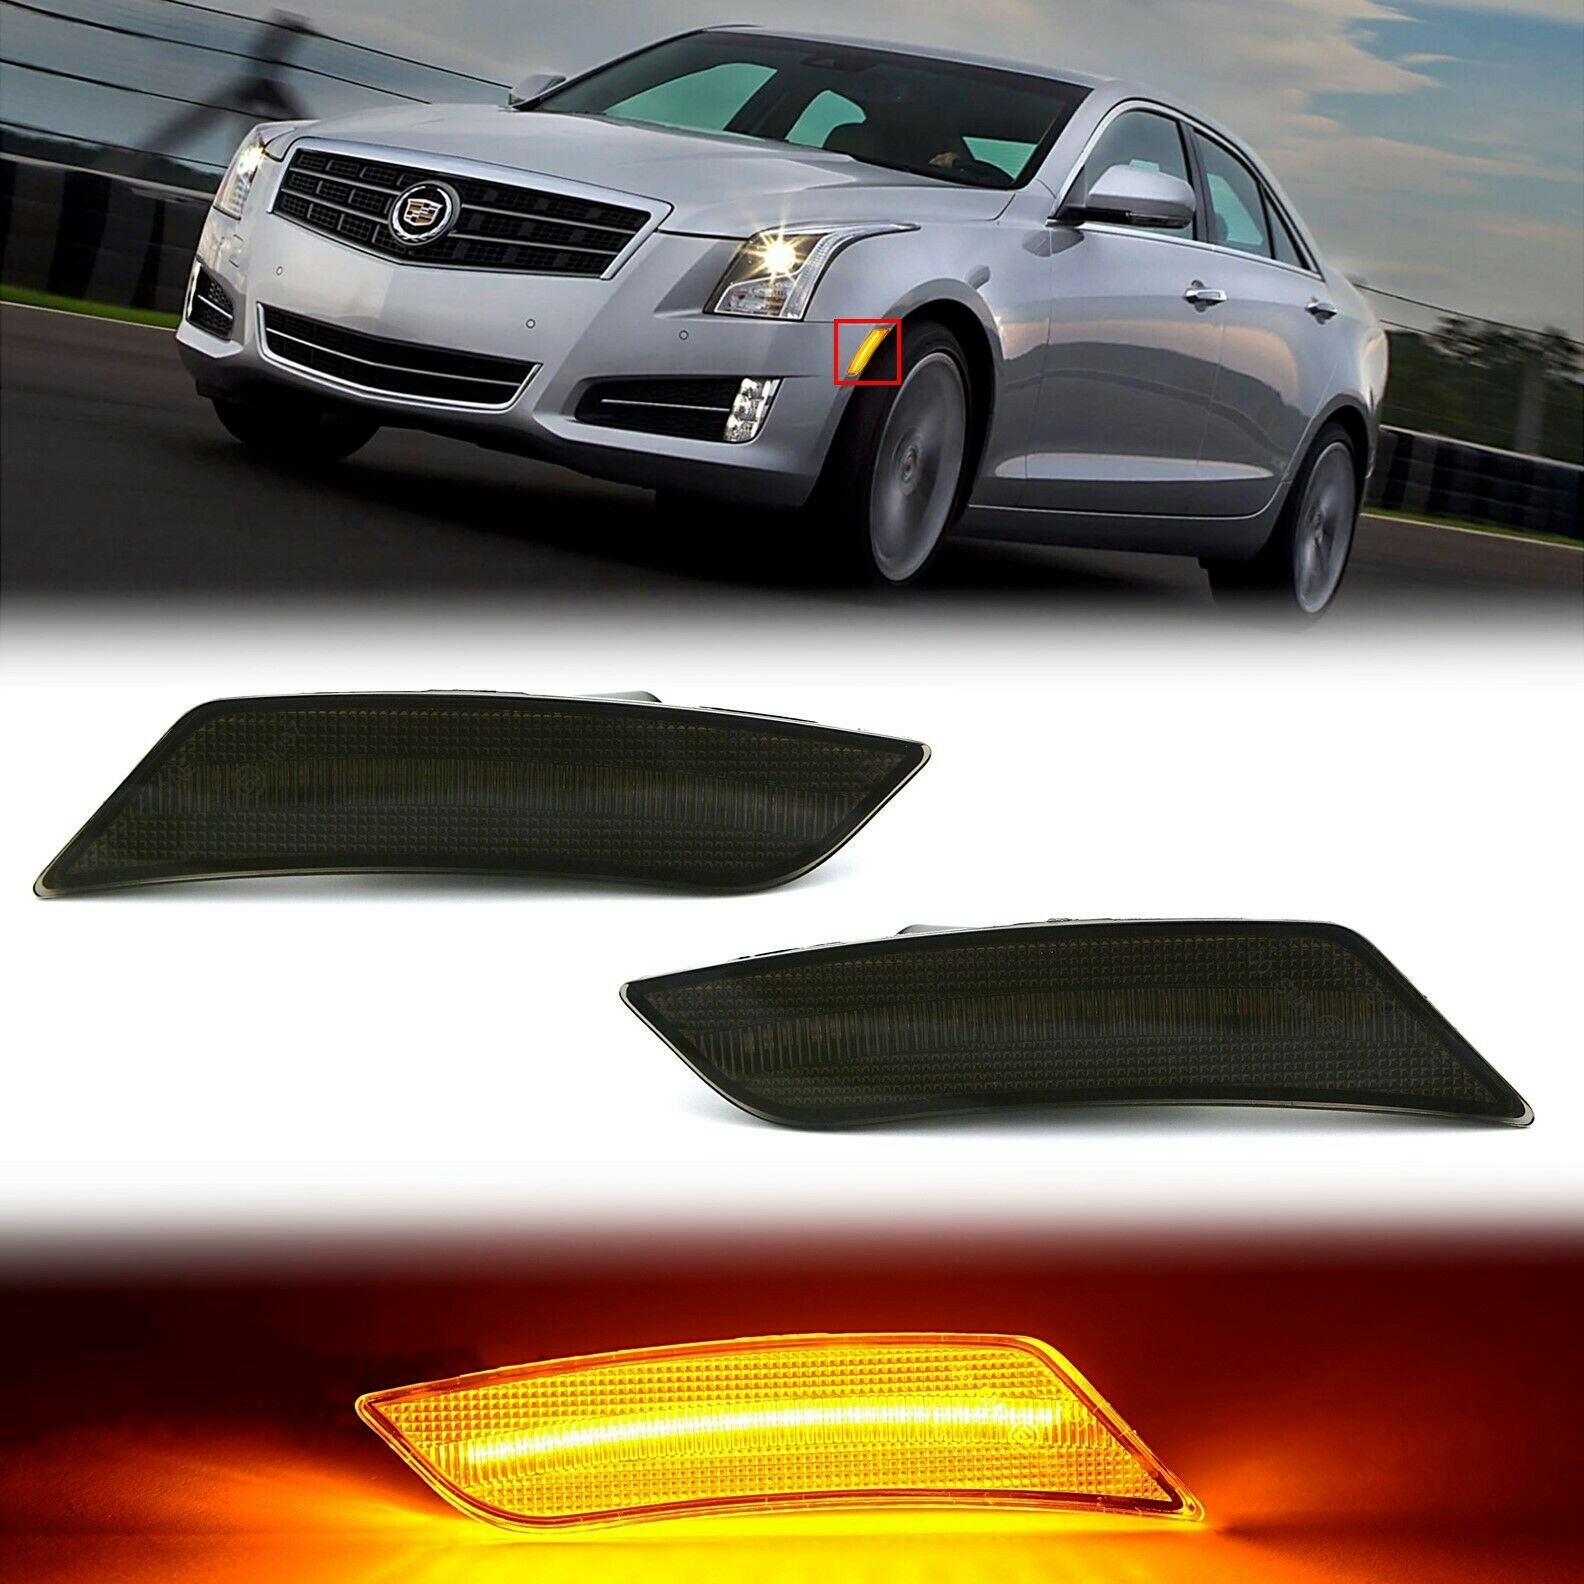 Amber LED Smoked Black Side Marker Lens Pair For 13-14 Cadillac ATS / 17-19 XT5